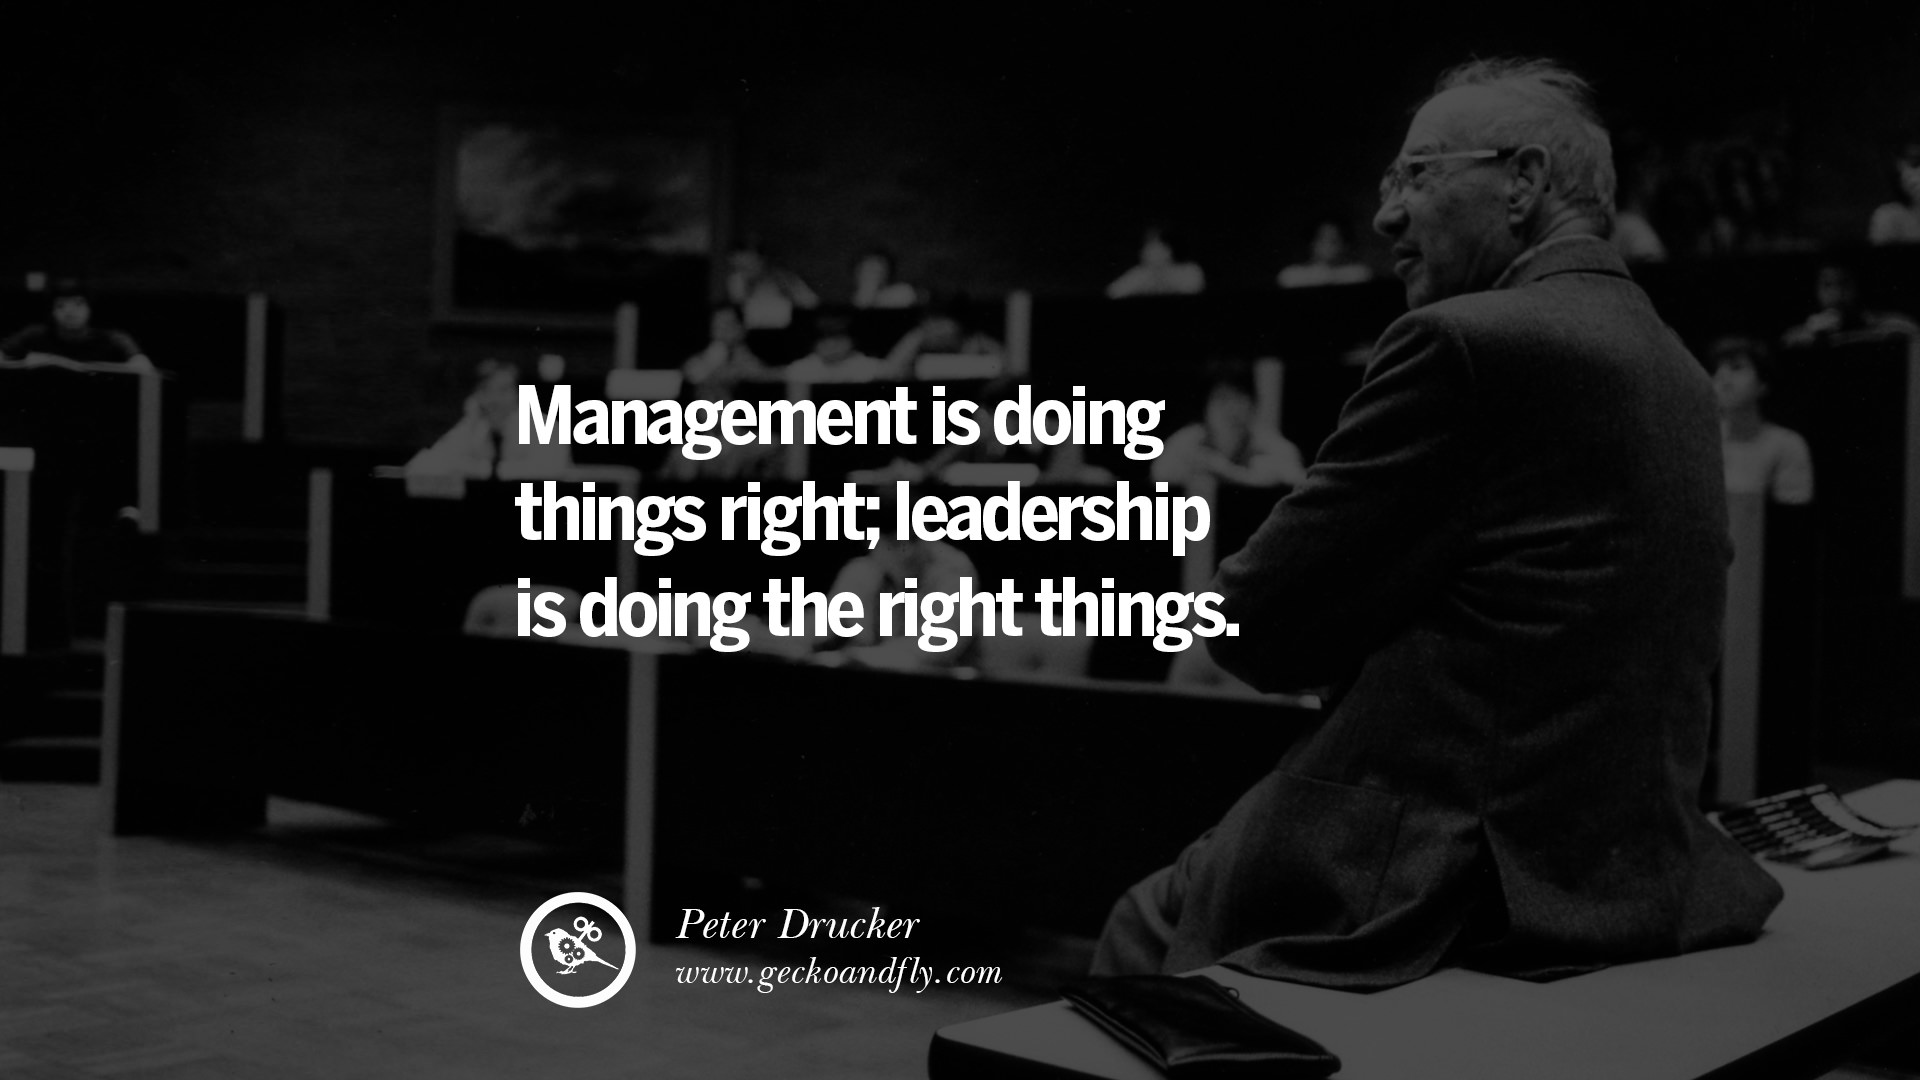 uplifting and motivational quotes on management leadership management is doing things right leadership is doing the right things